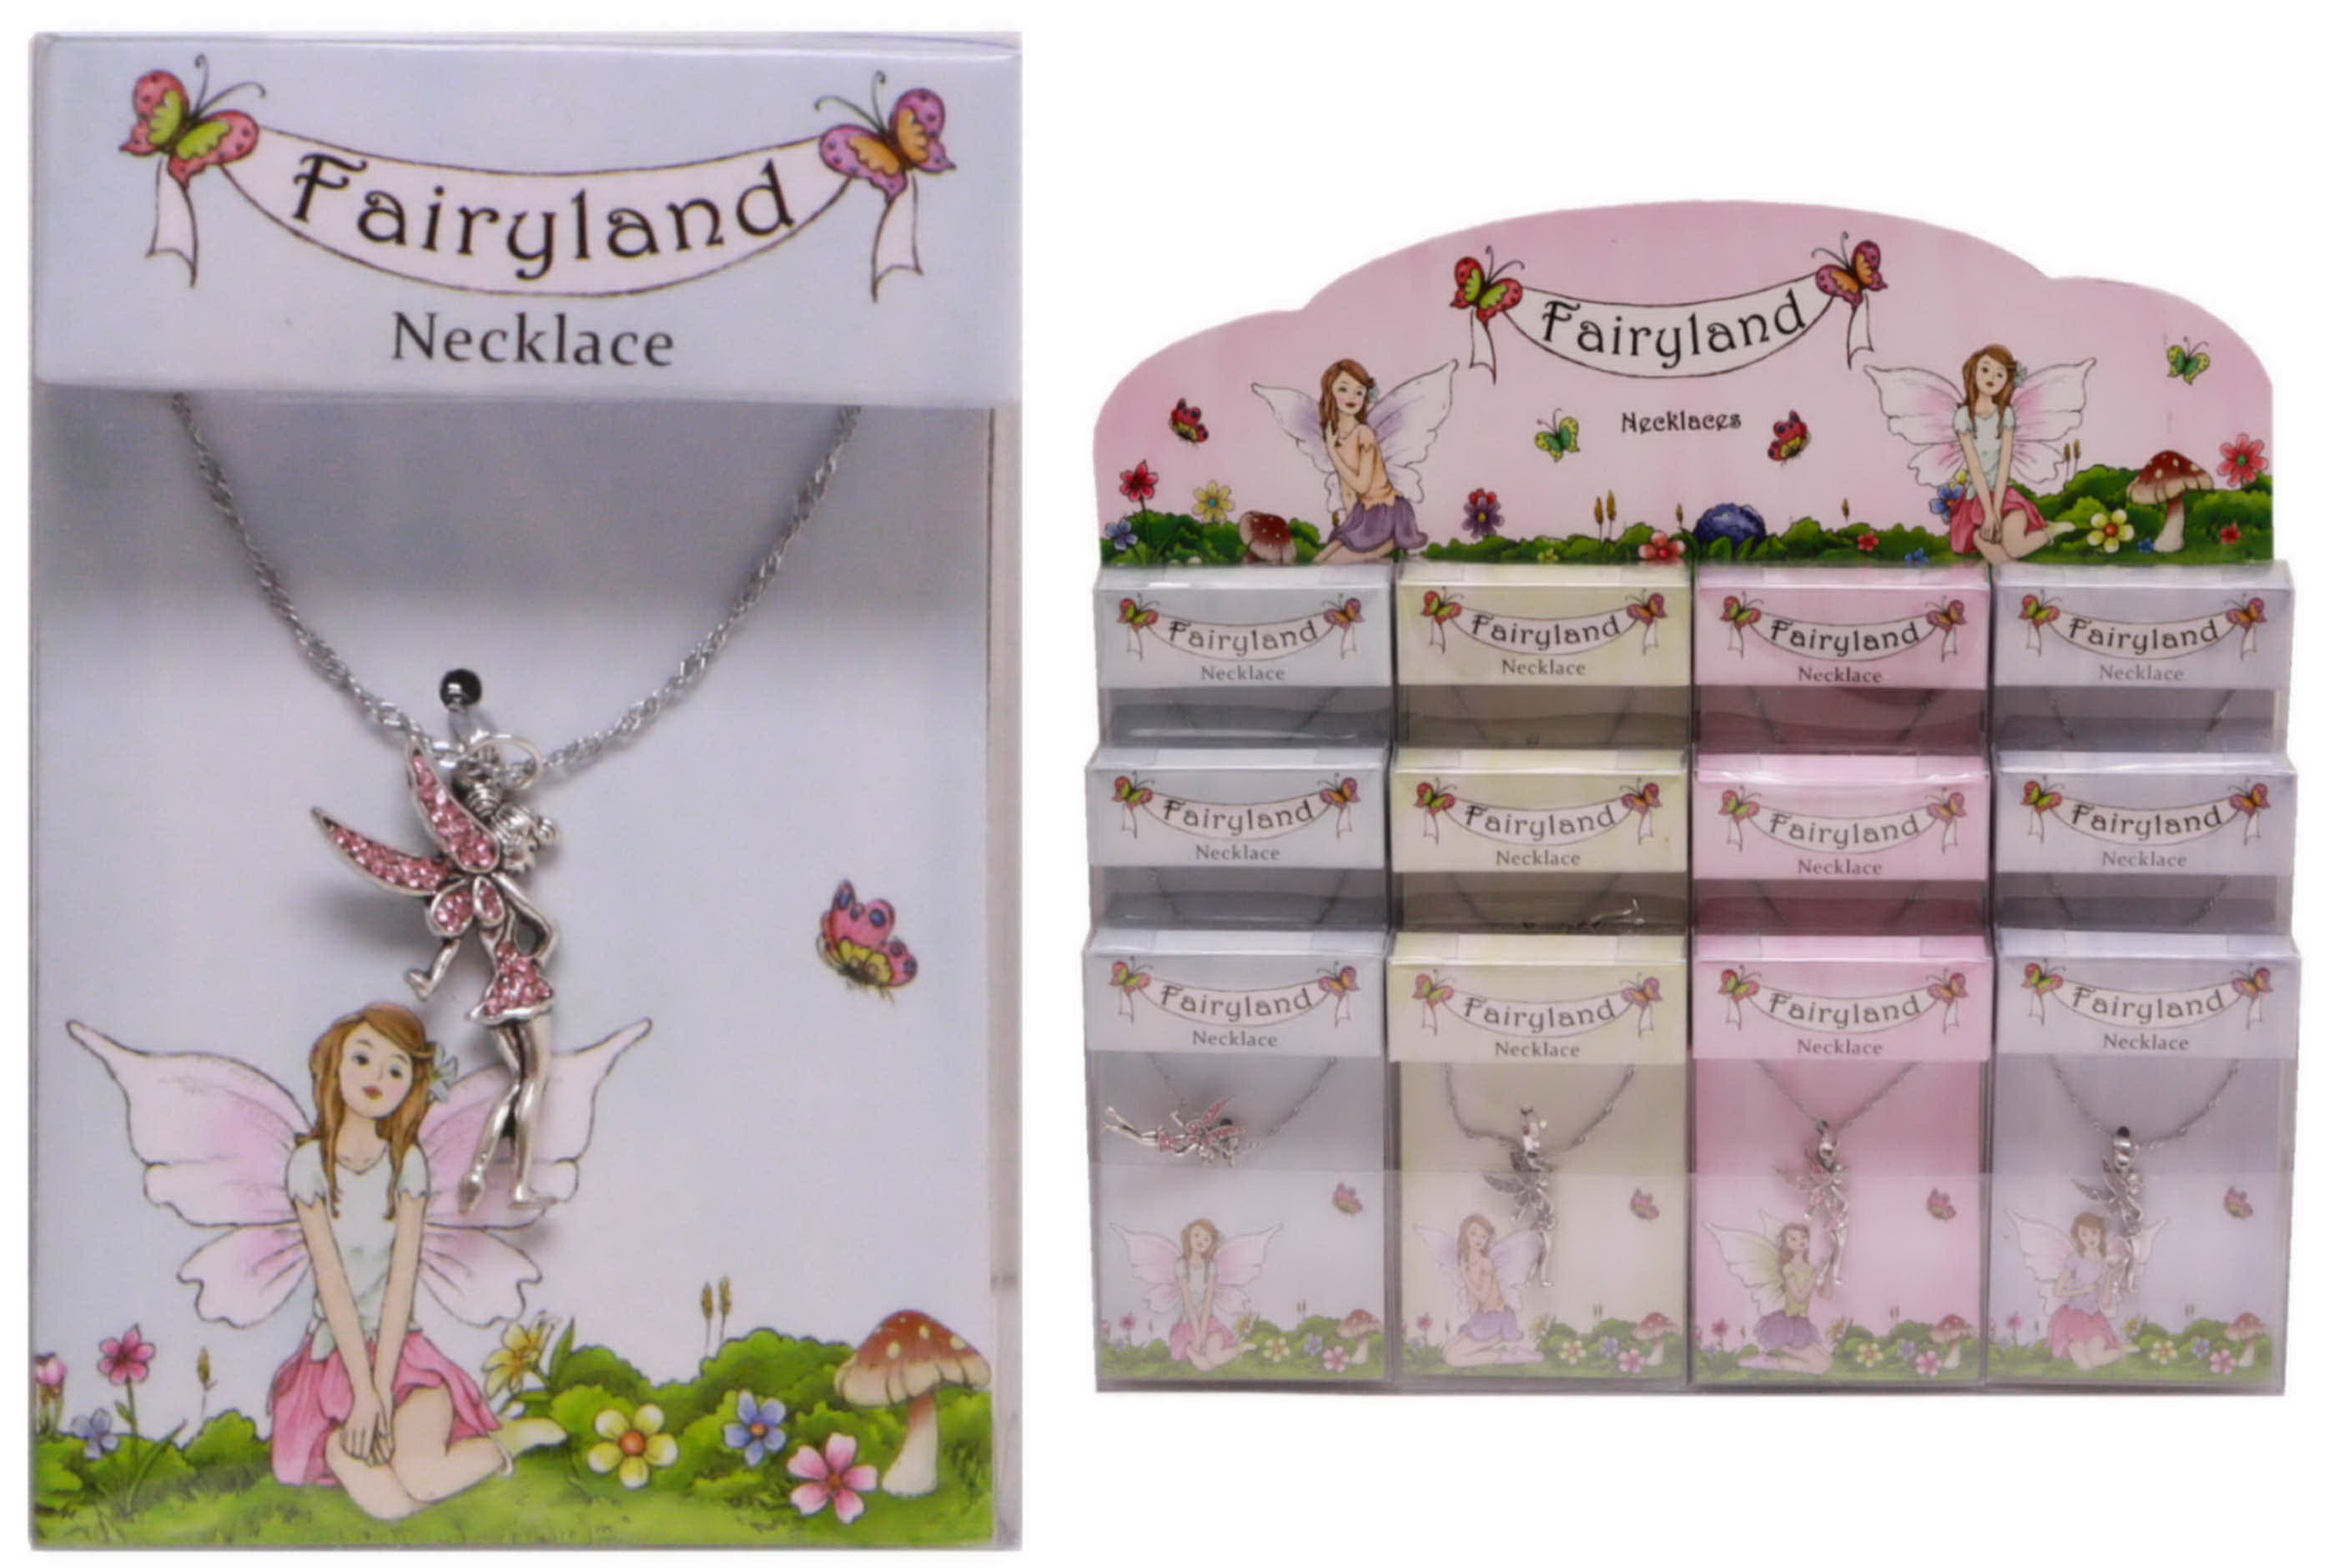 Fairyland Necklaces In Acetate Box In Display Box